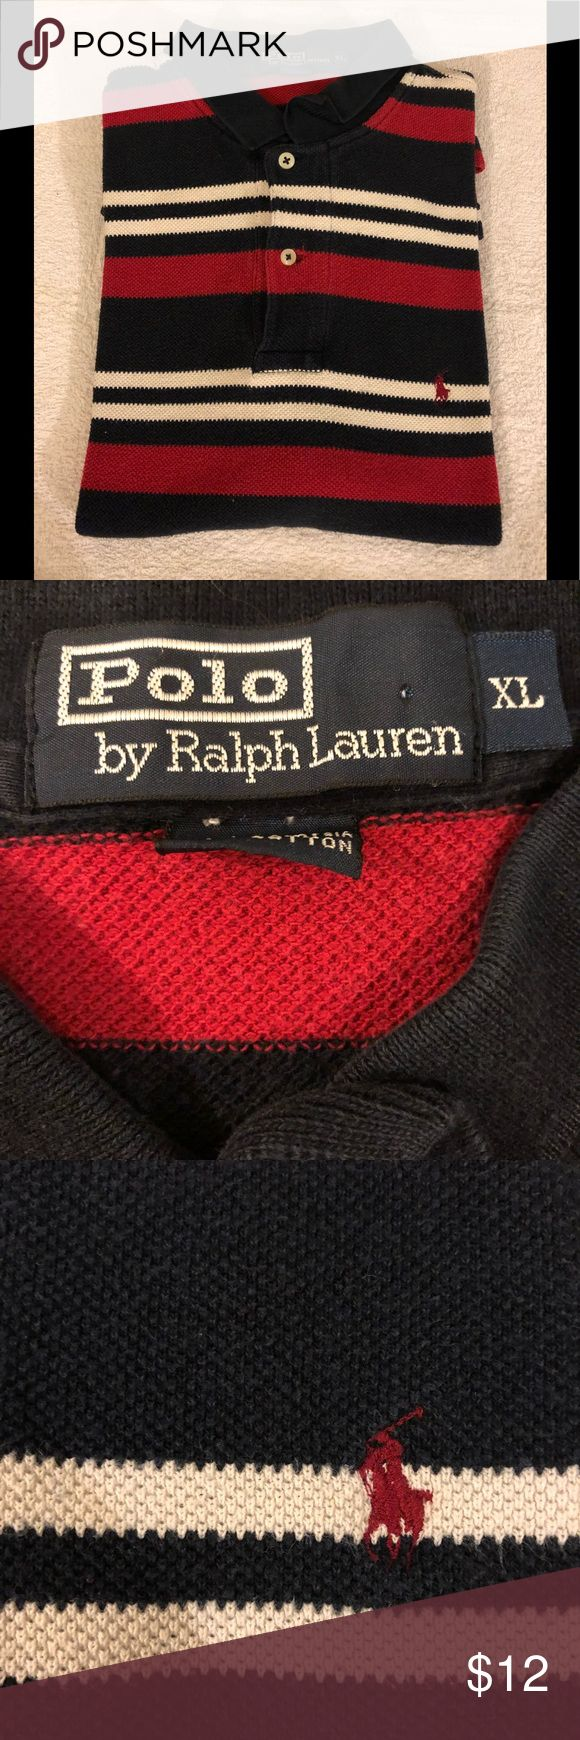 Polo Ralph Lauren Navy Red & White Stripe Shirt XL Polo Ralph Lauren Navy Blue, White and Red Stripe Short Sleeve Polo Shirt size XL! Great condition! Please make reasonable offers and bundle! Ask questions! :) Polo by Ralph Lauren Shirts Polos